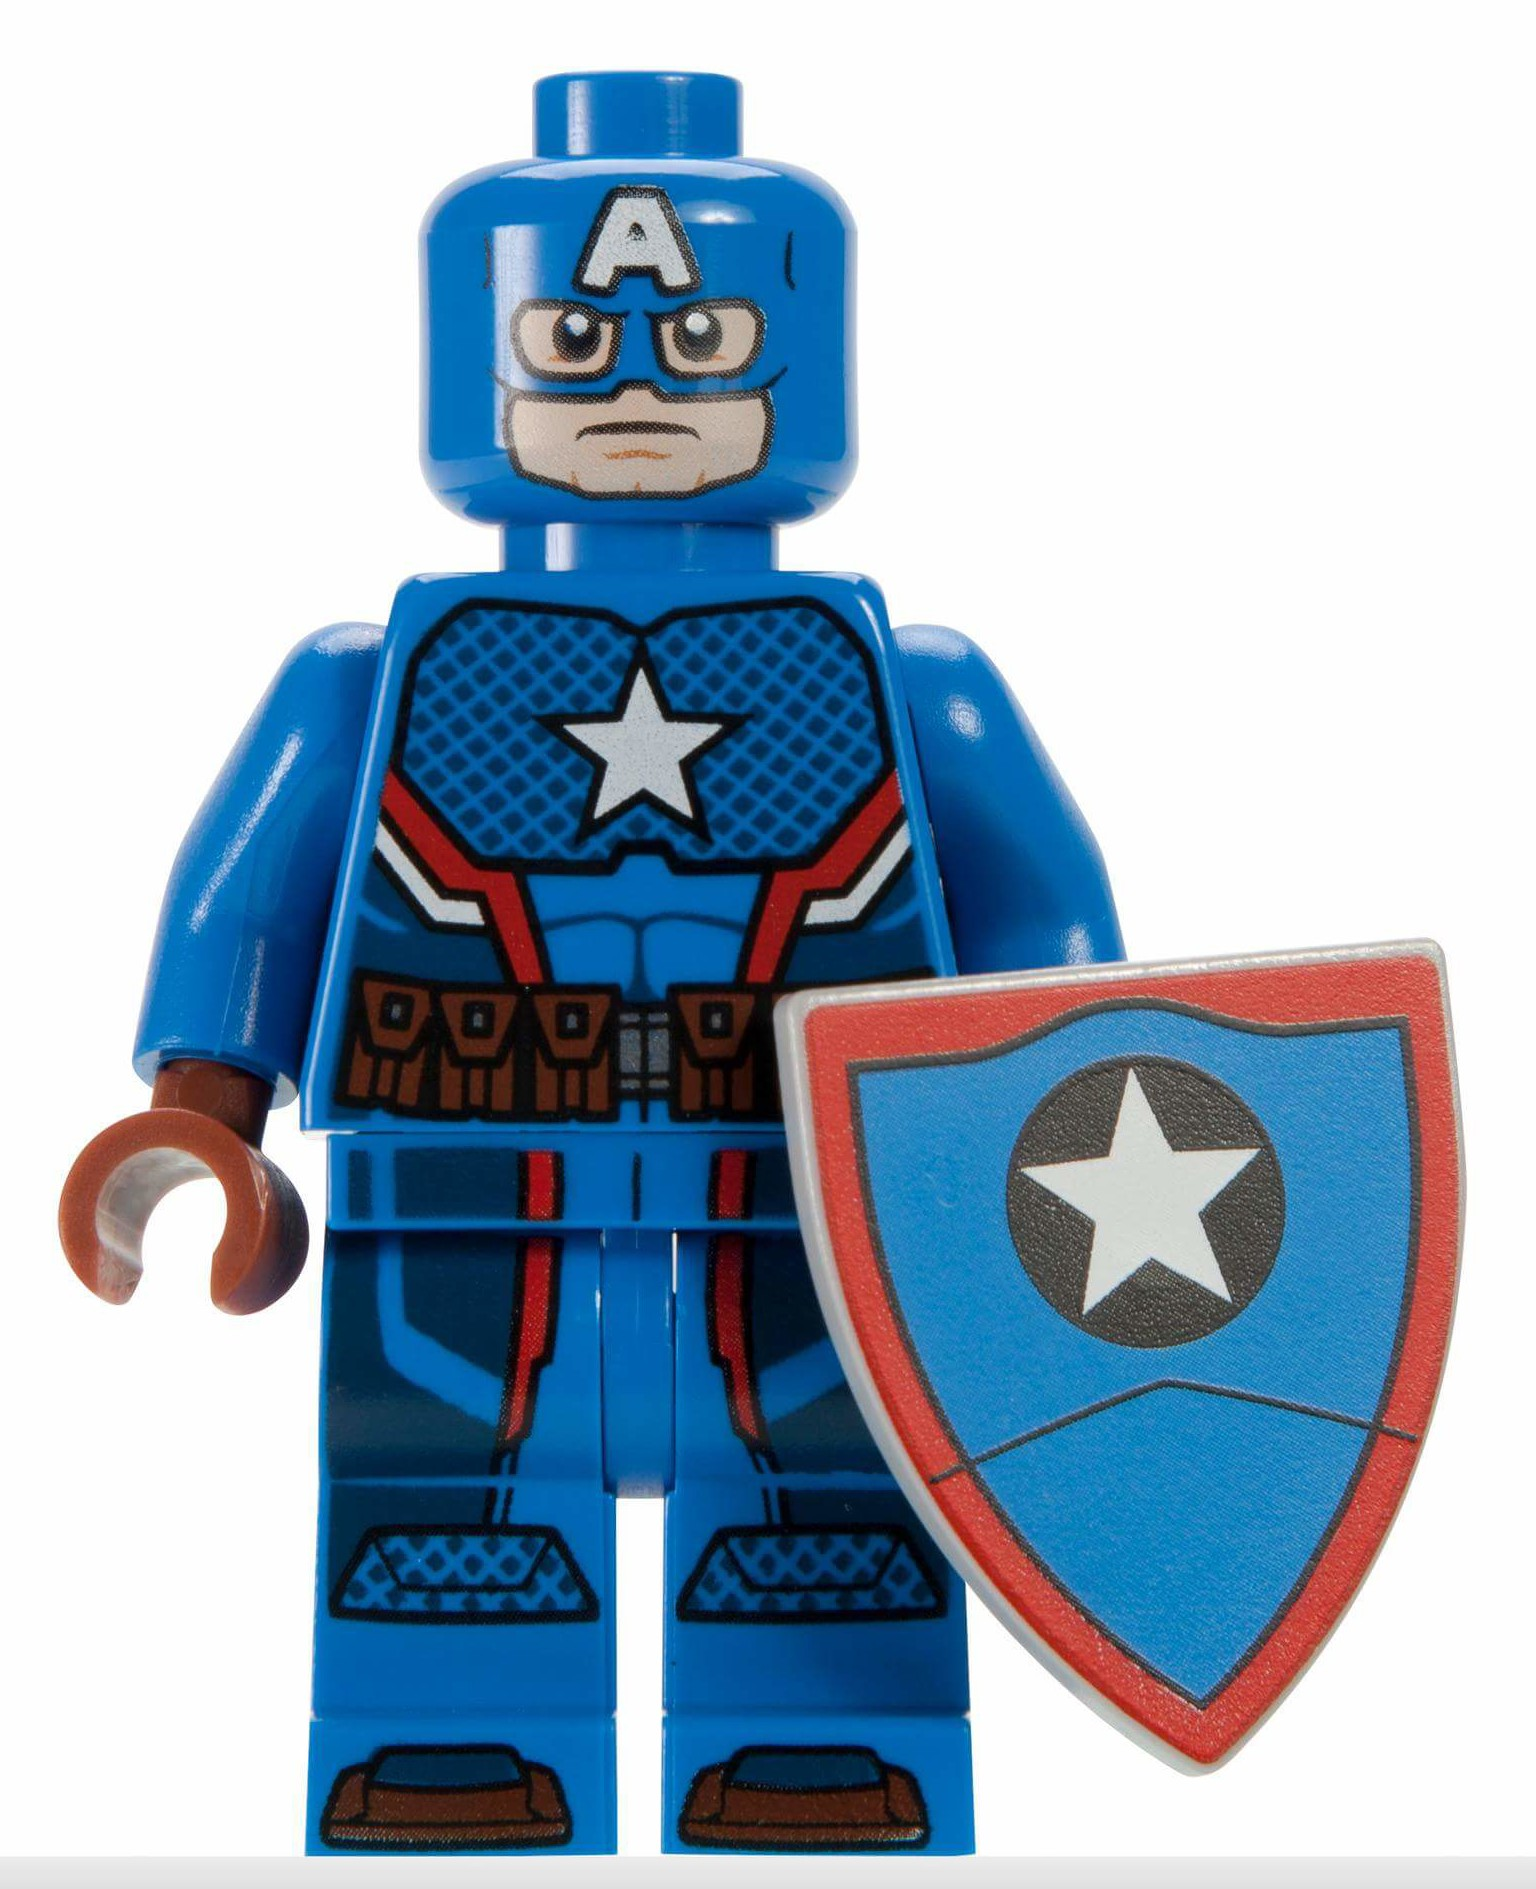 Sdcc 2016 exclusive lego hydra captain america figure marvel toy news - Lego capitaine america ...